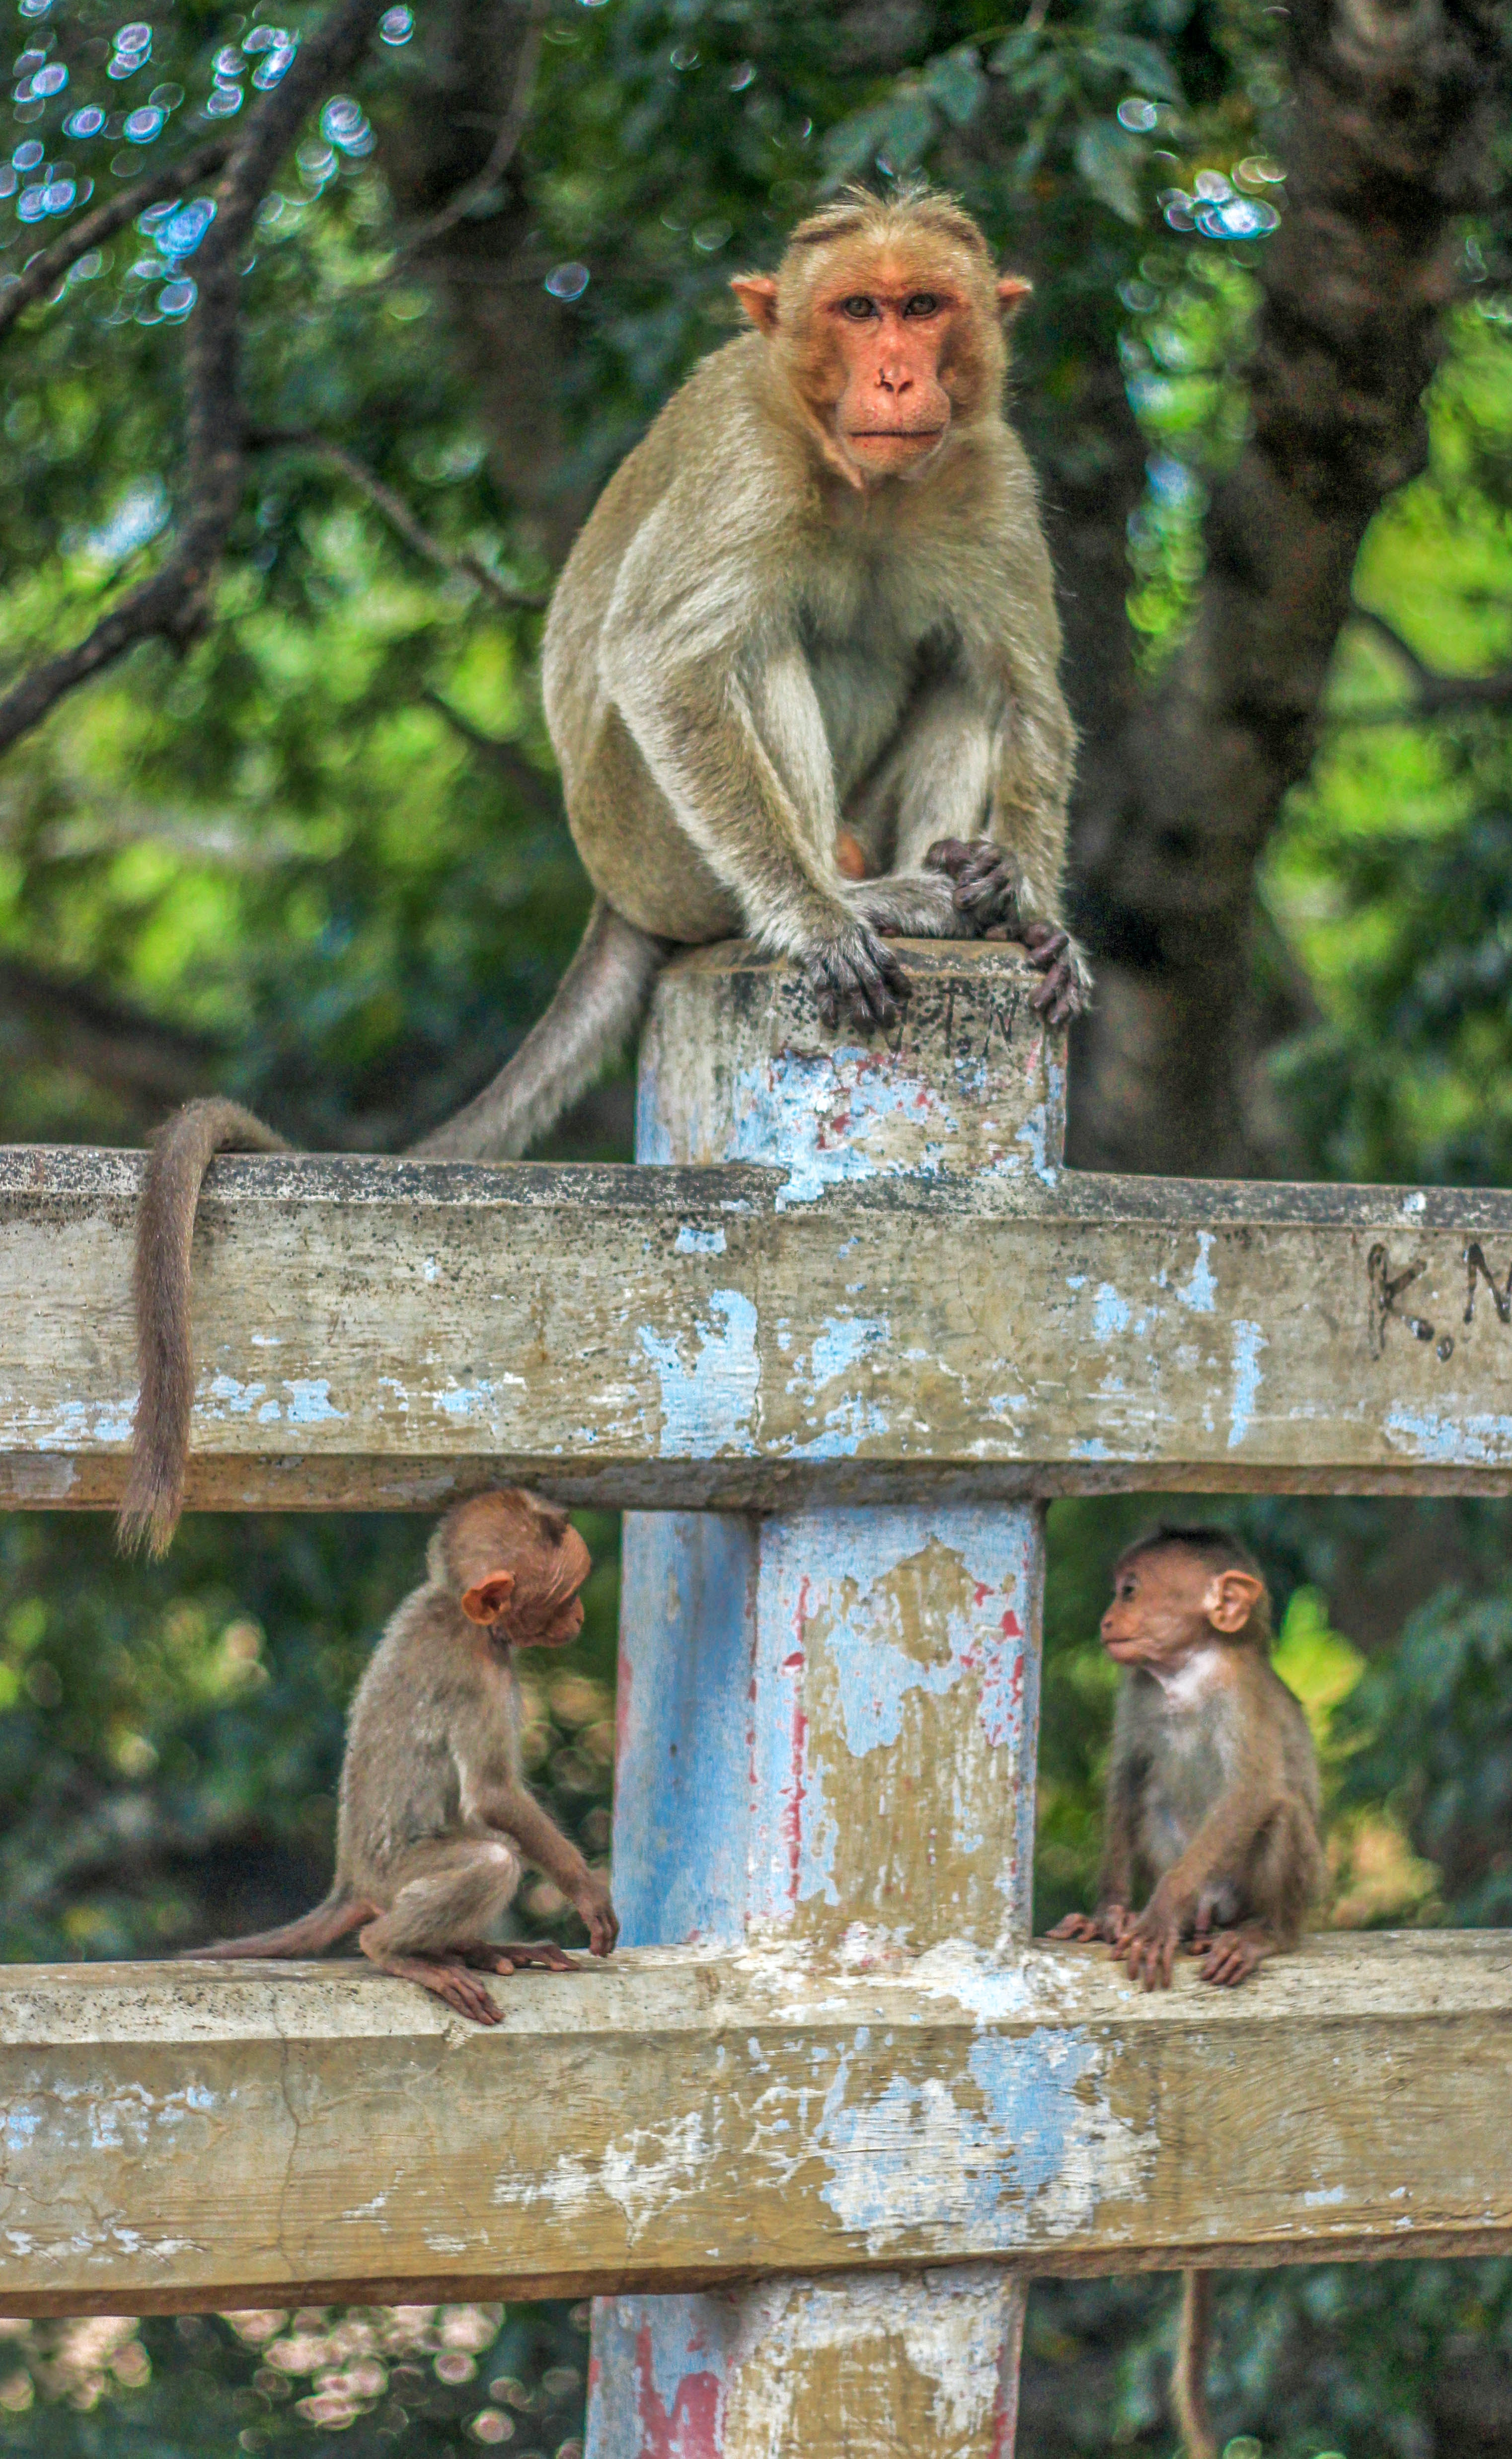 A monkey sitting on a weathered fence post, with two baby monkeys sitting on either side of the fence post on the rail below.